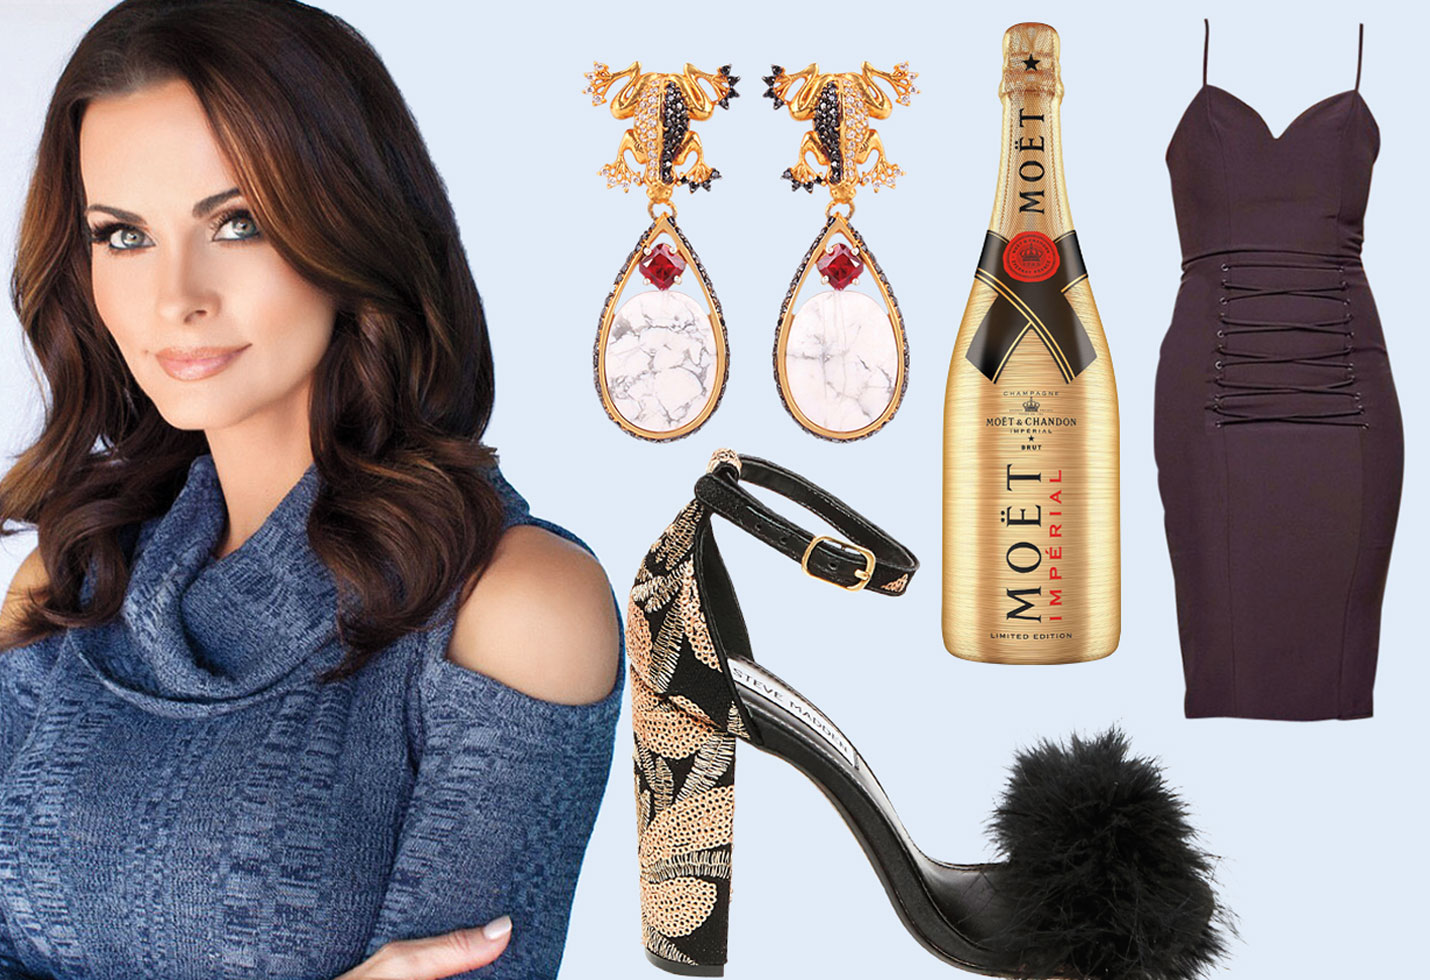 Karen mcdougal holiday party advice star pp